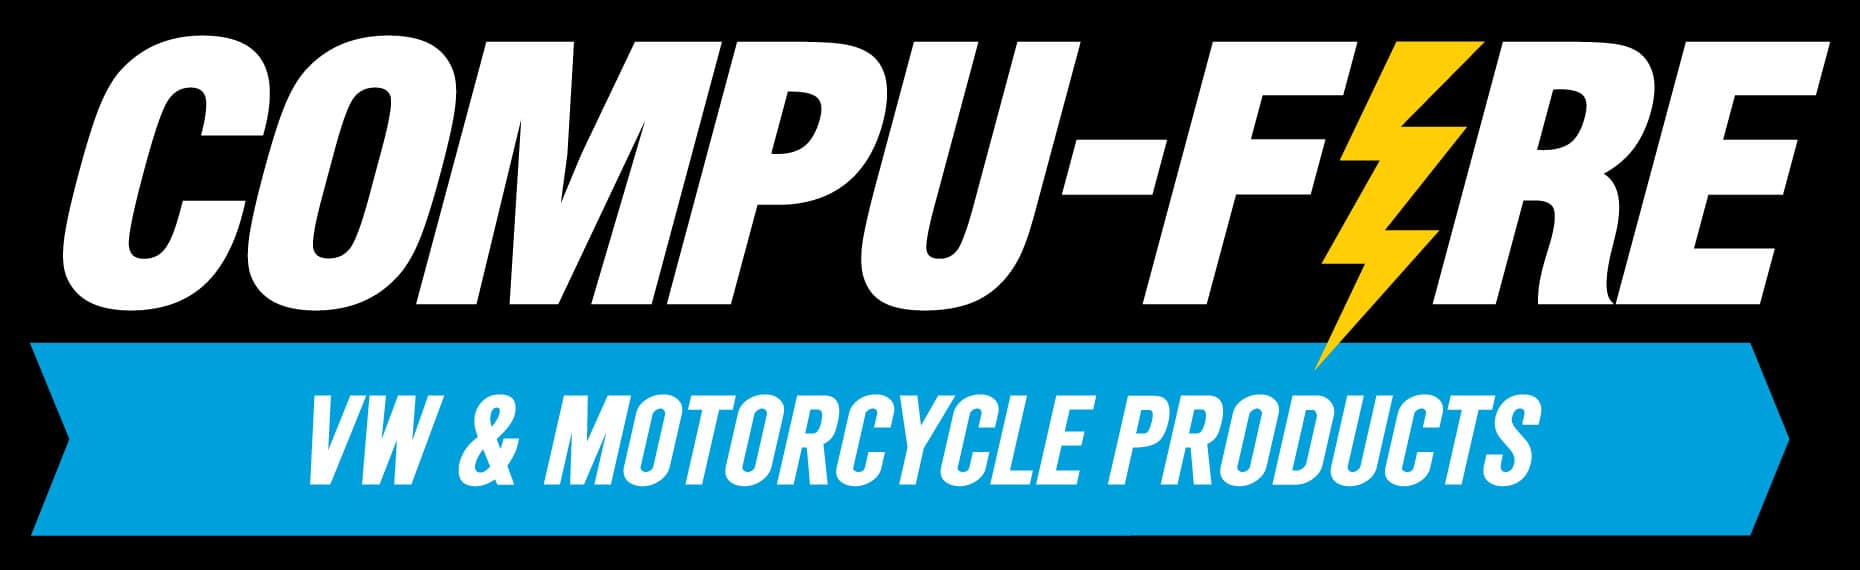 Compu-Fire Motocycle Products Rev Logo